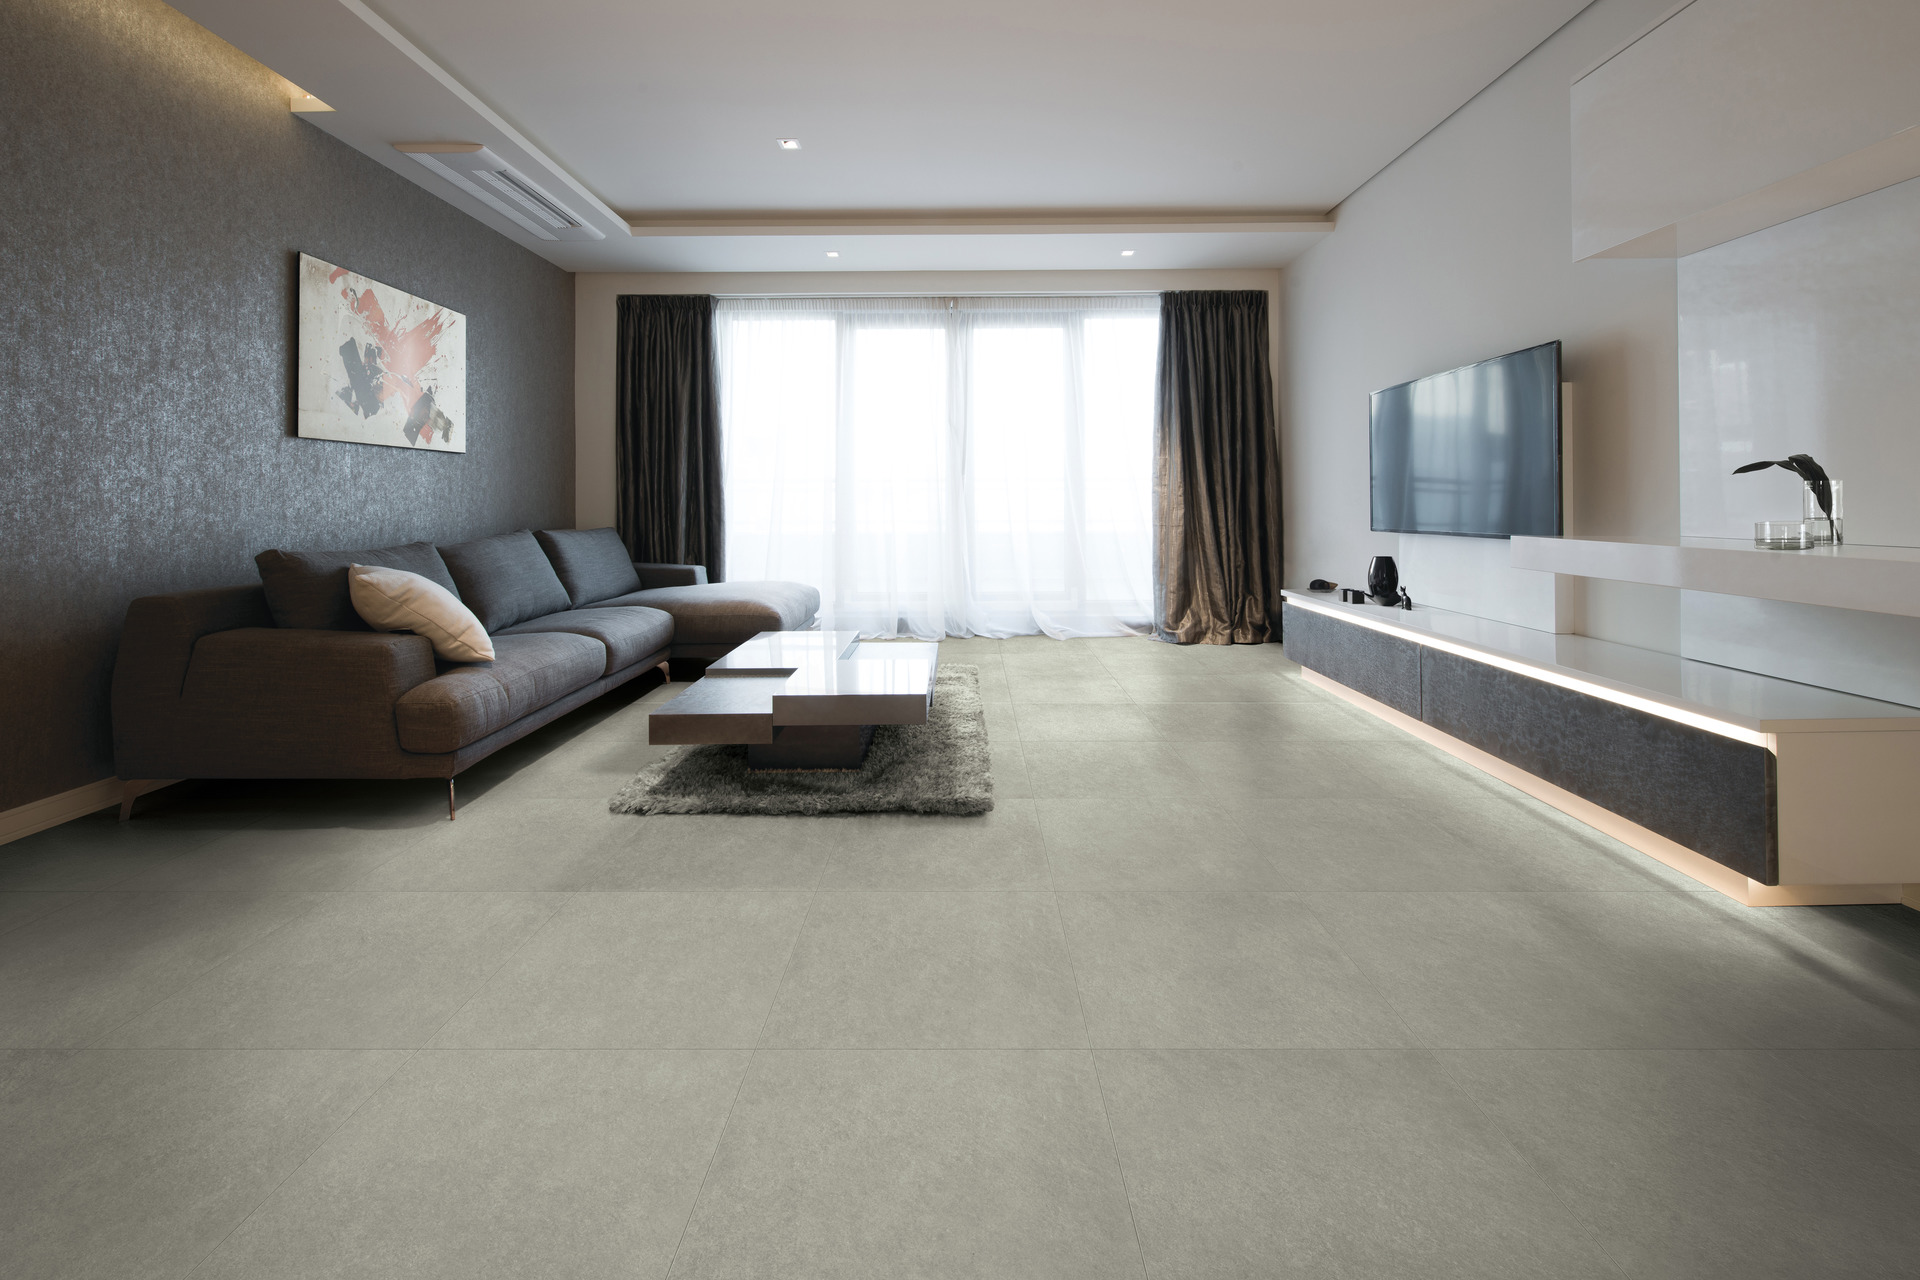 Stone Effect Porcelain Tiles - Shade